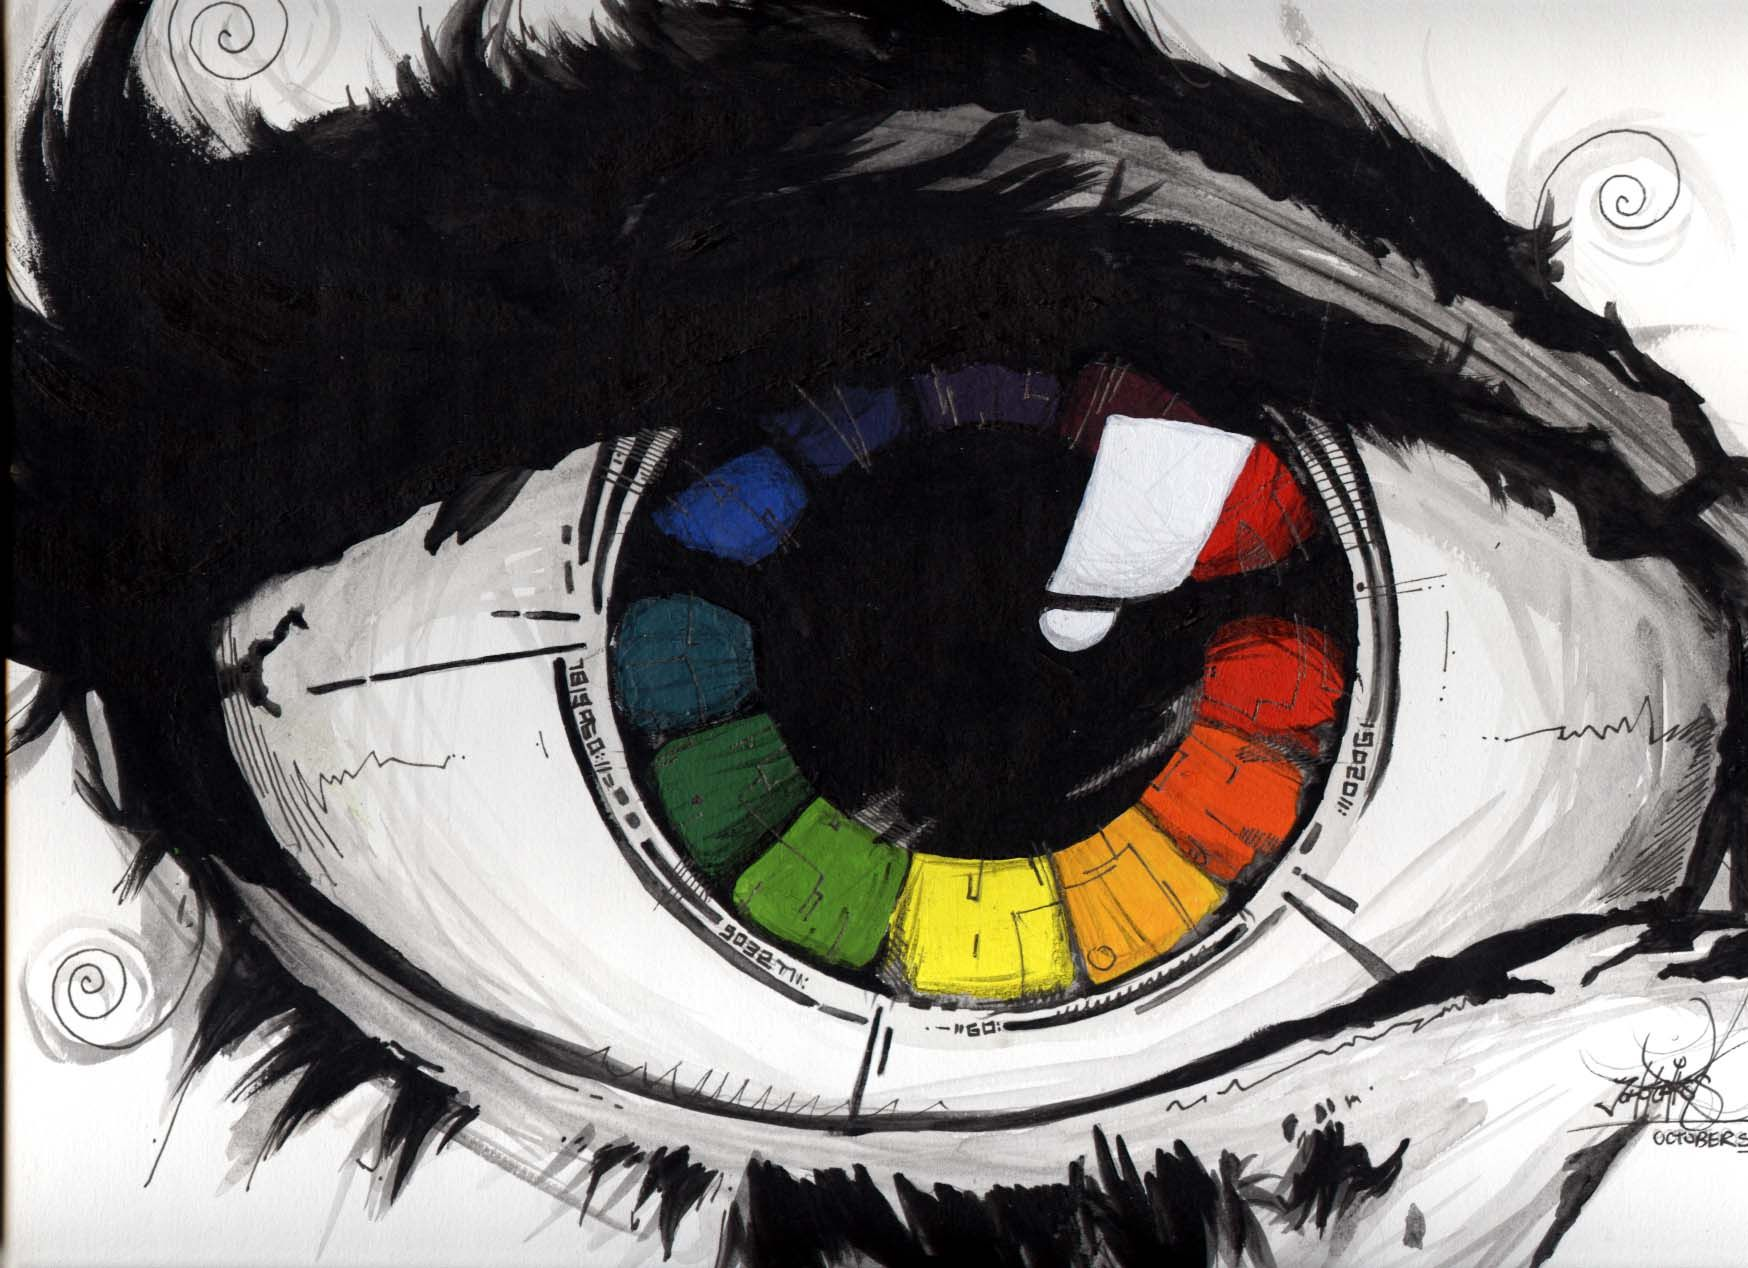 Color theory online games - Color Wheel Project Add The Color Wheel To Something And Paint